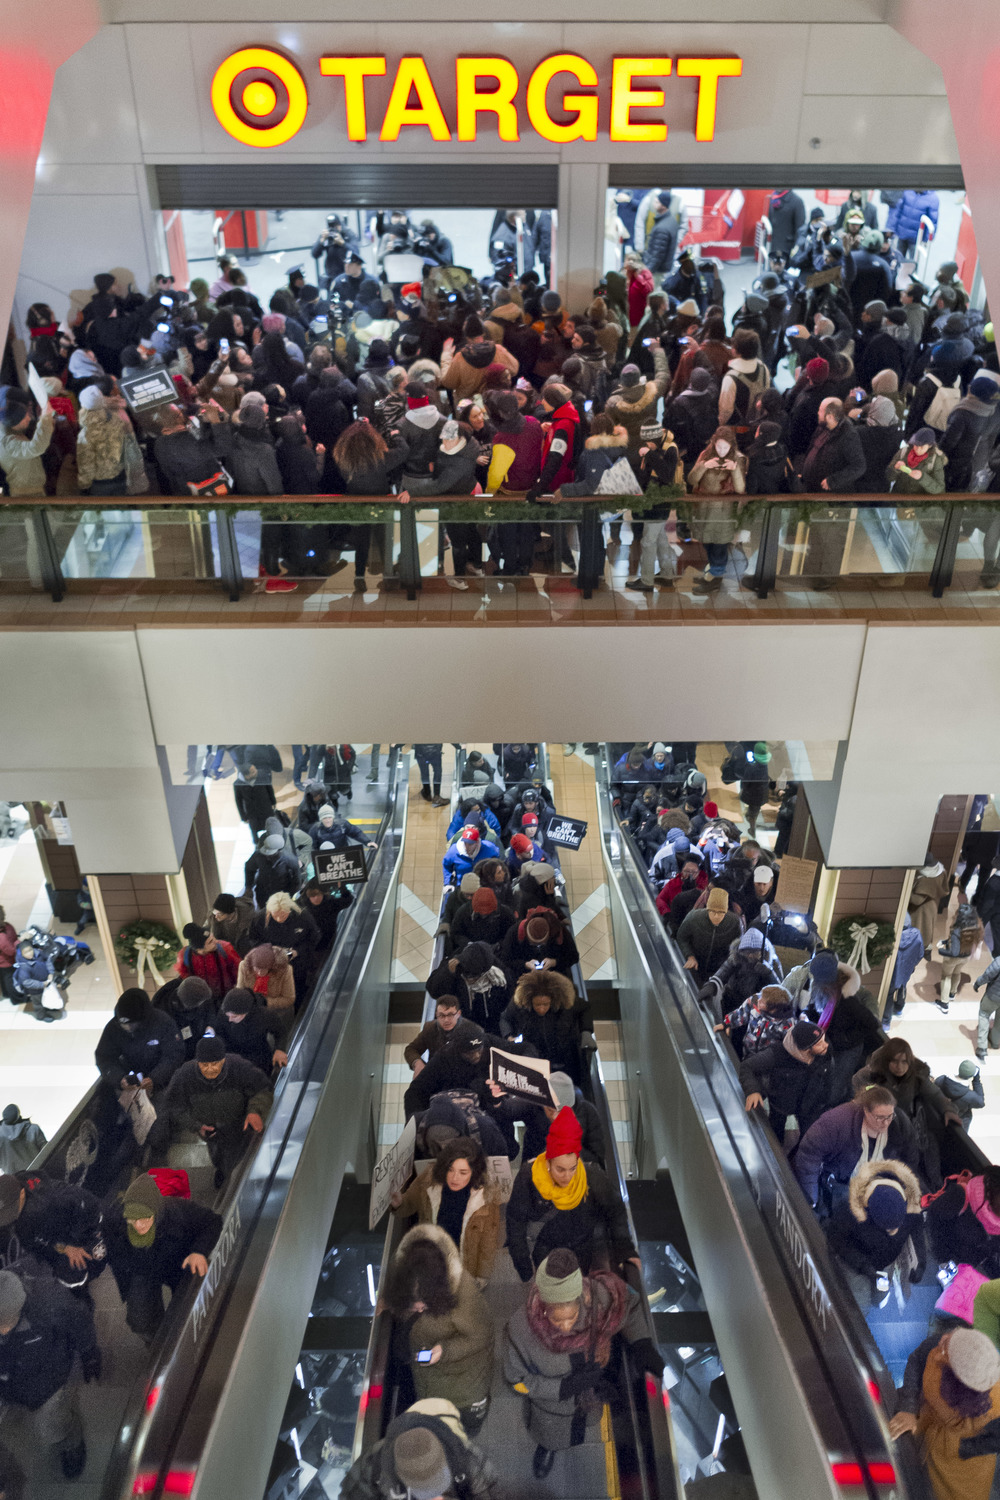 Protestors flood the escalators at the Atlantic Terminal in Brooklyn, forcing Target to close their doors.